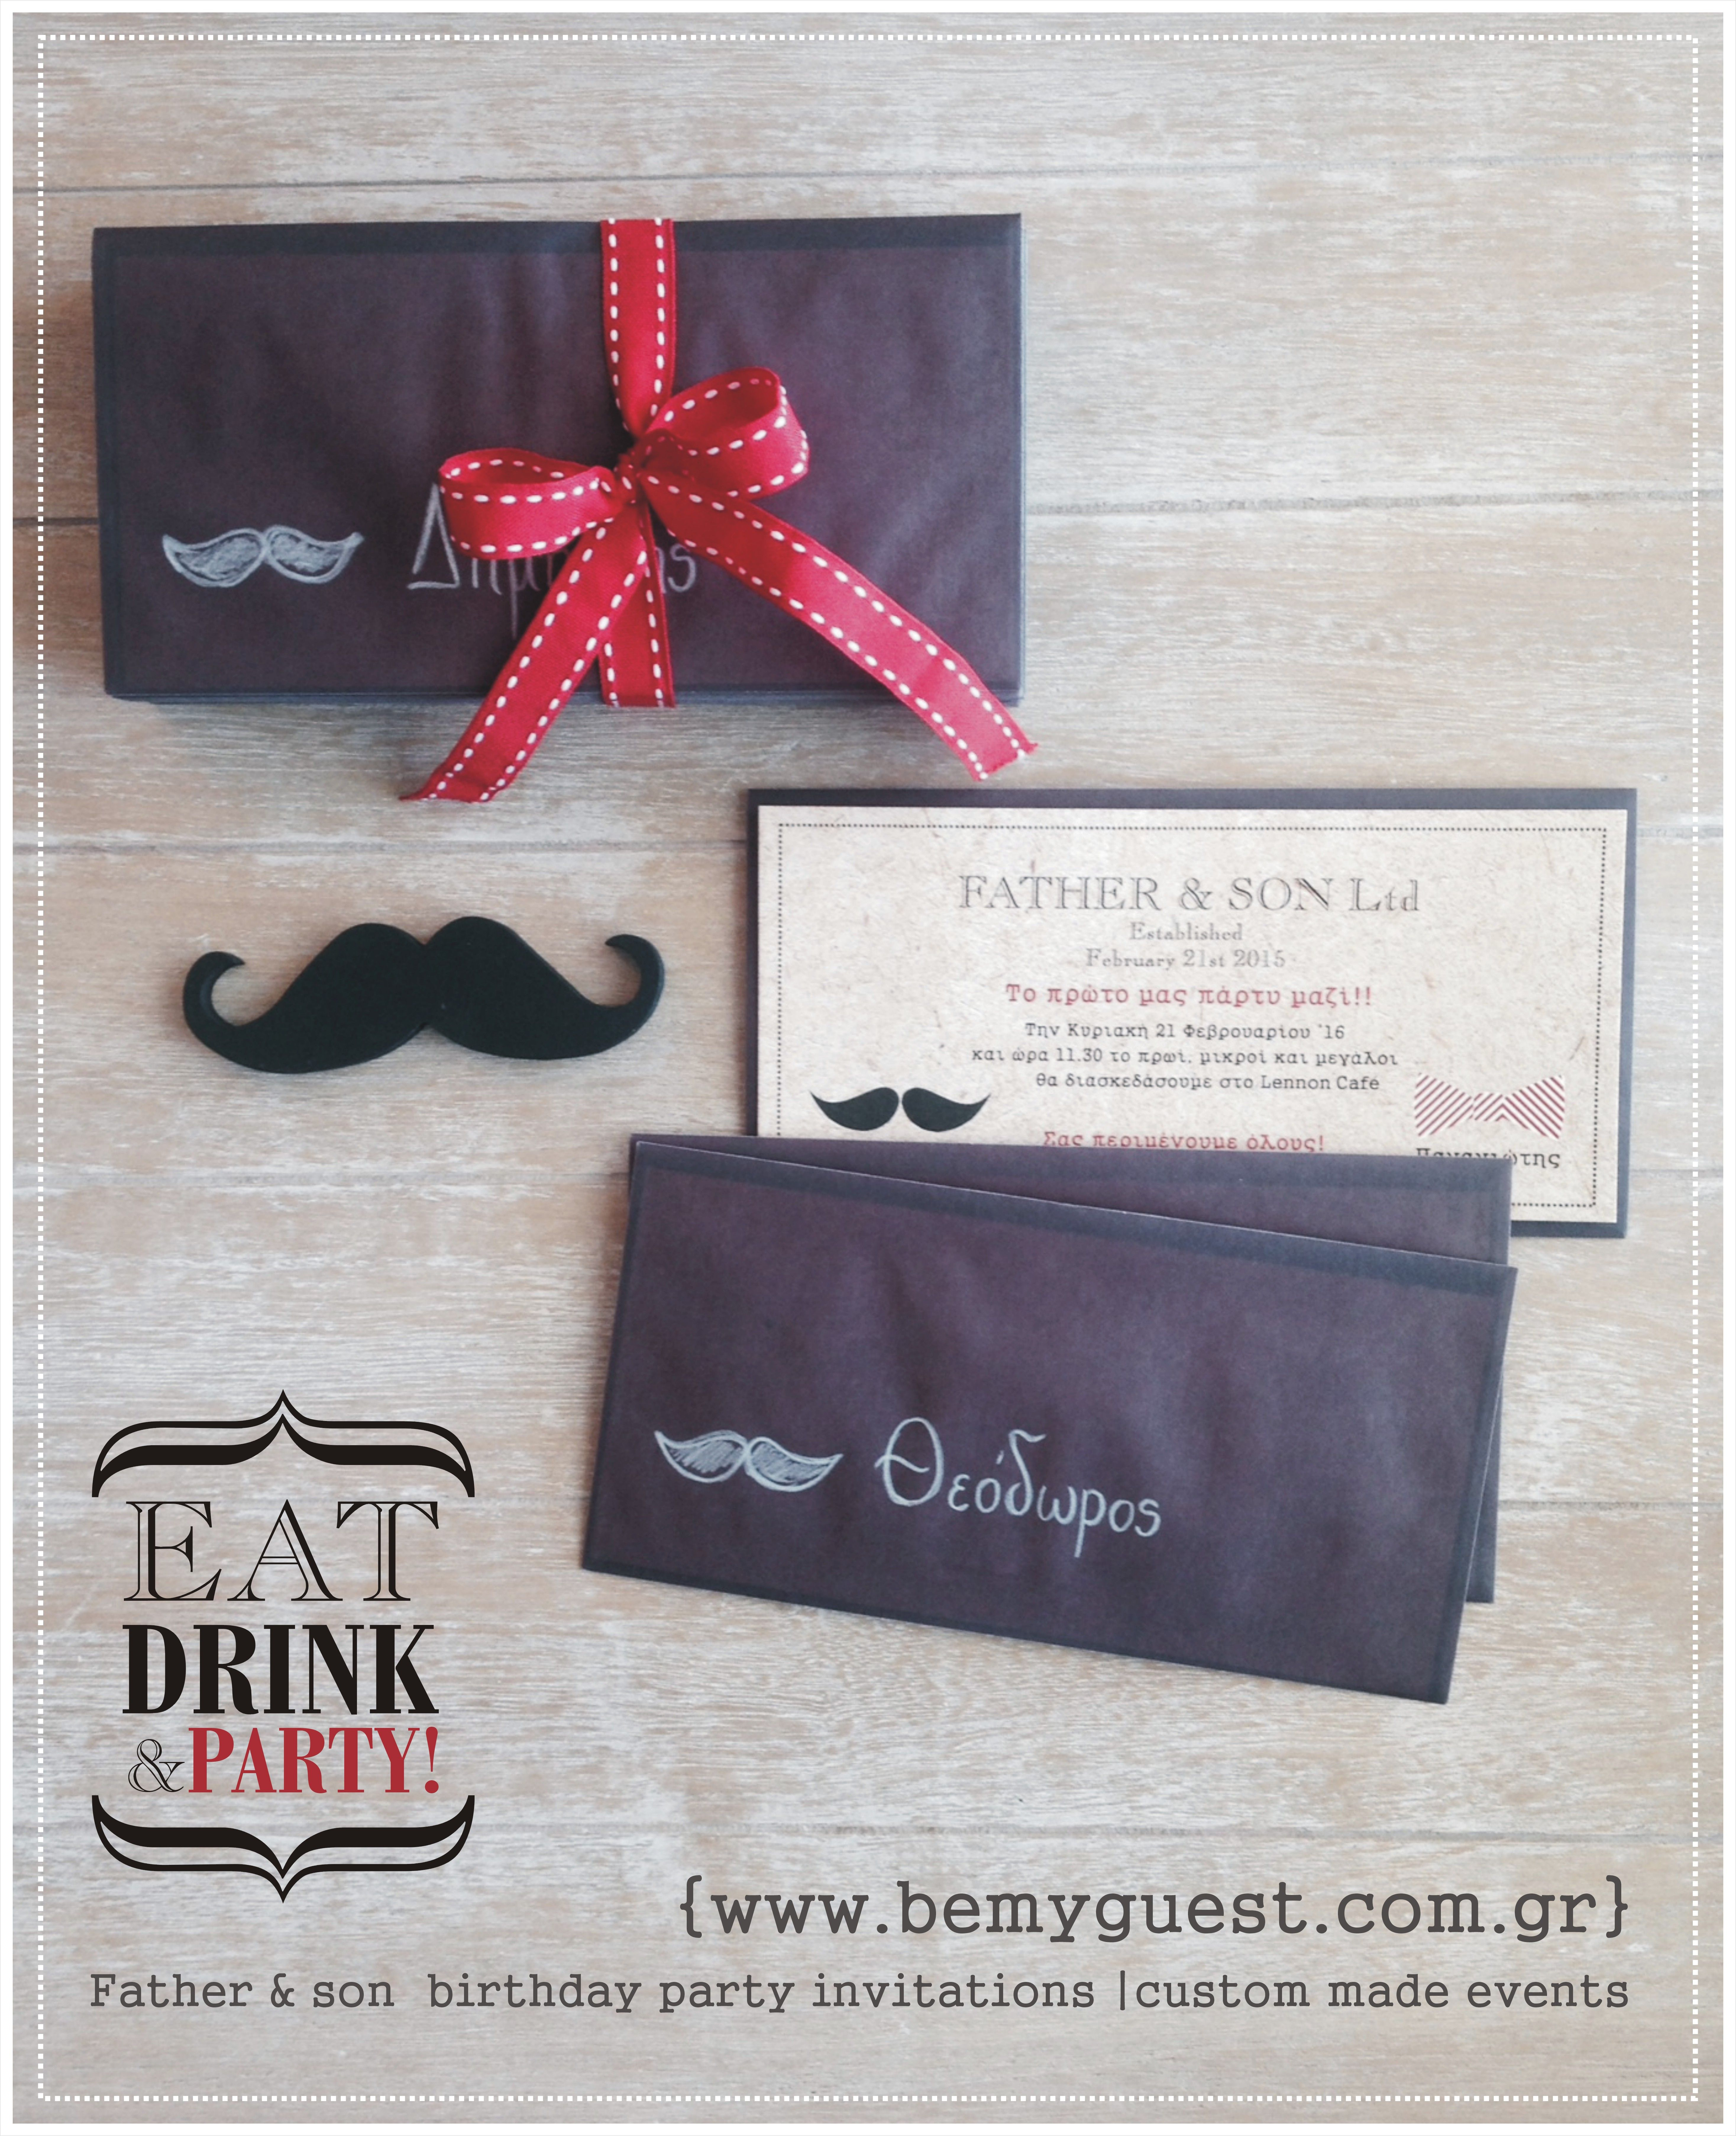 Father & son birthday party! | custom made party invitations ...